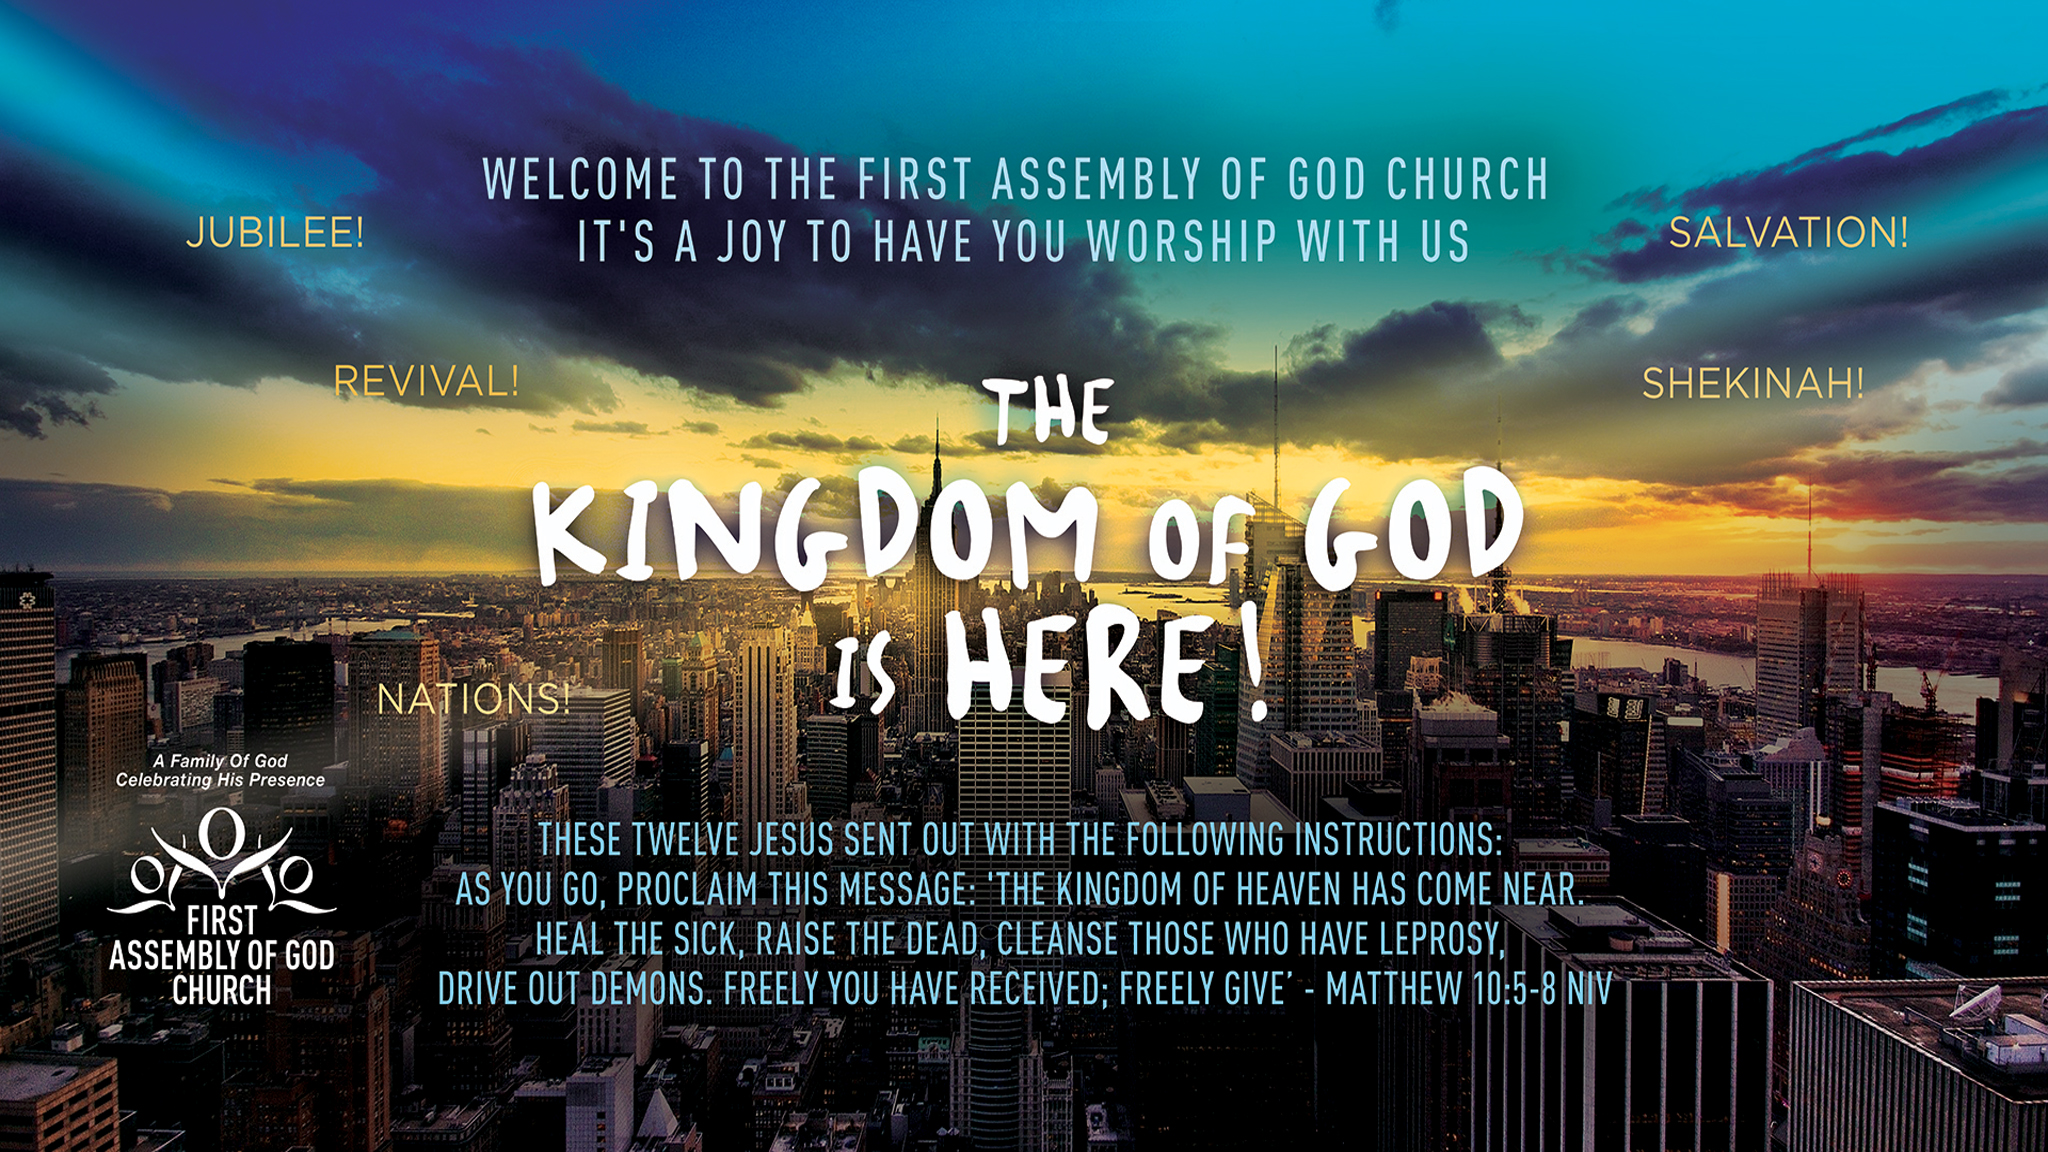 The Kingdom of God is here backdrop_FAGC_flat_1920x960